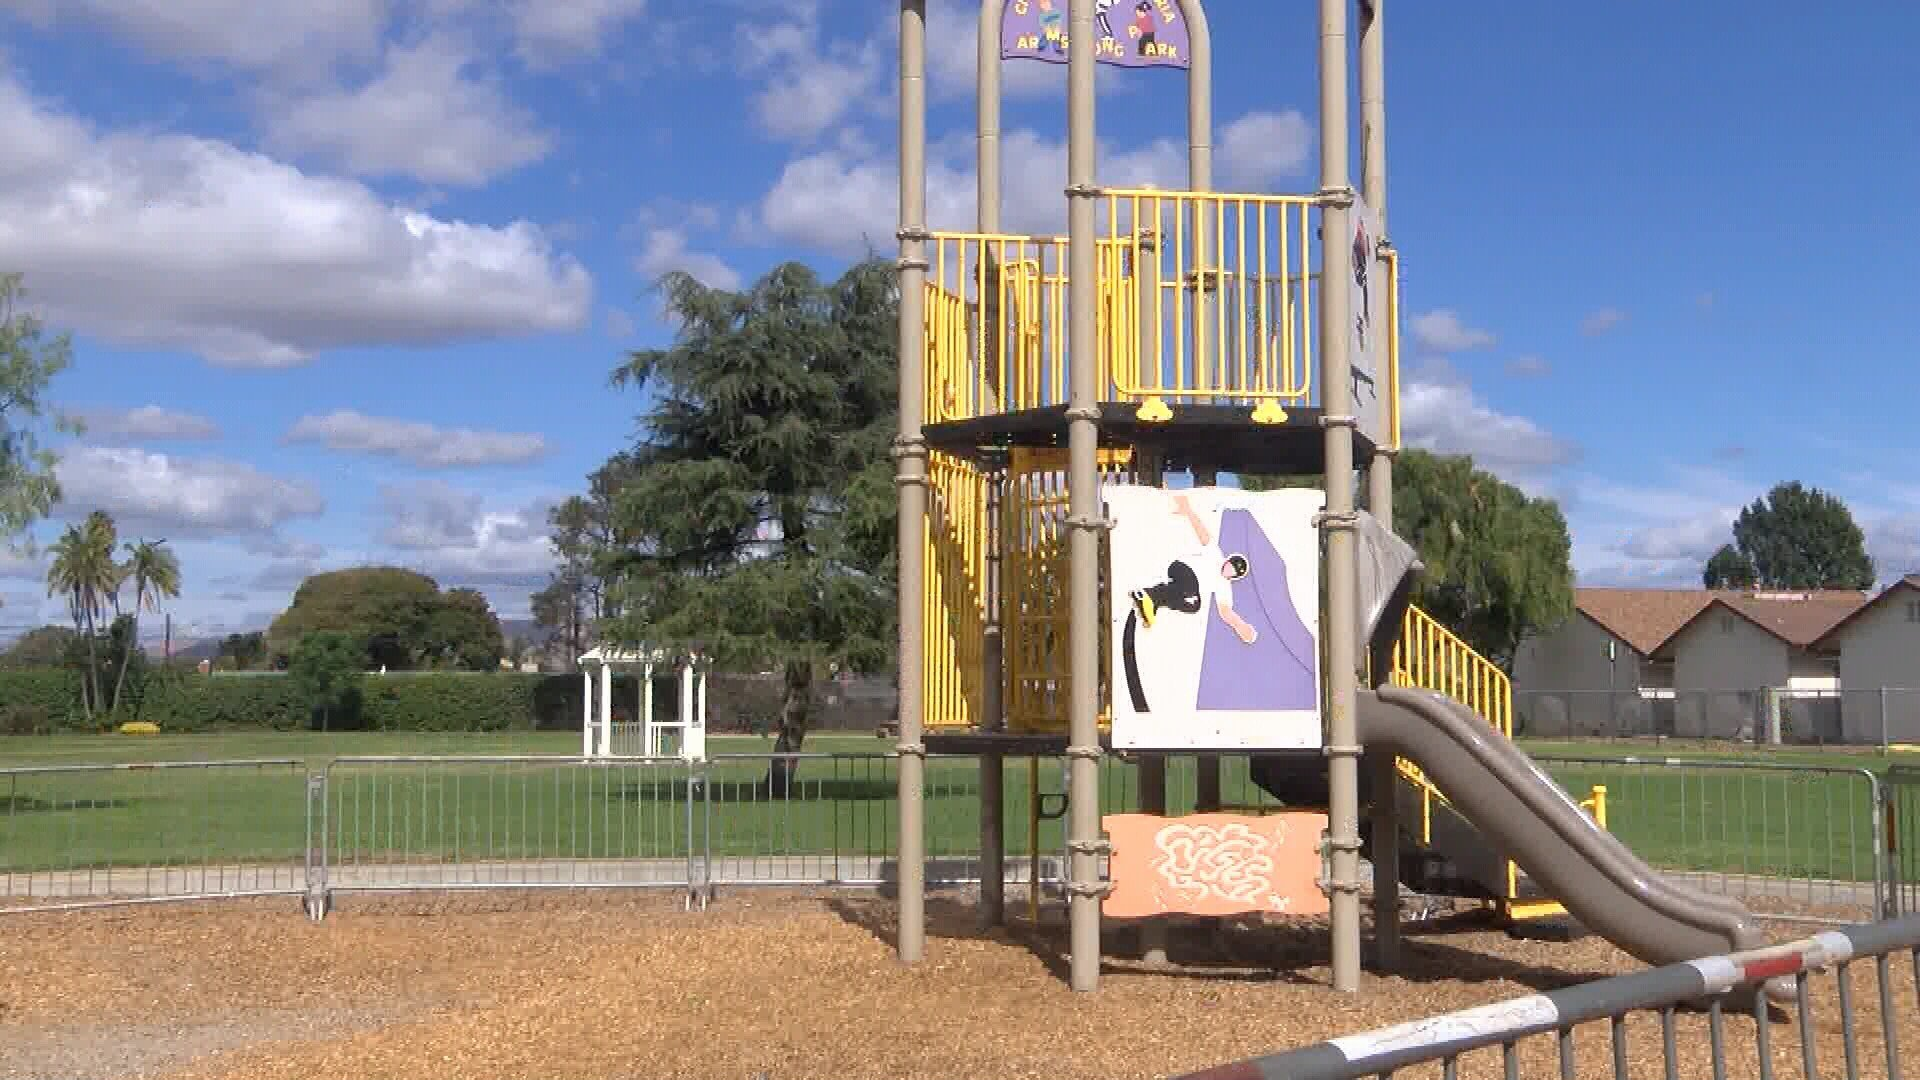 The playground at Armstrong Park was destroyed in a fire. (KSBY photo)